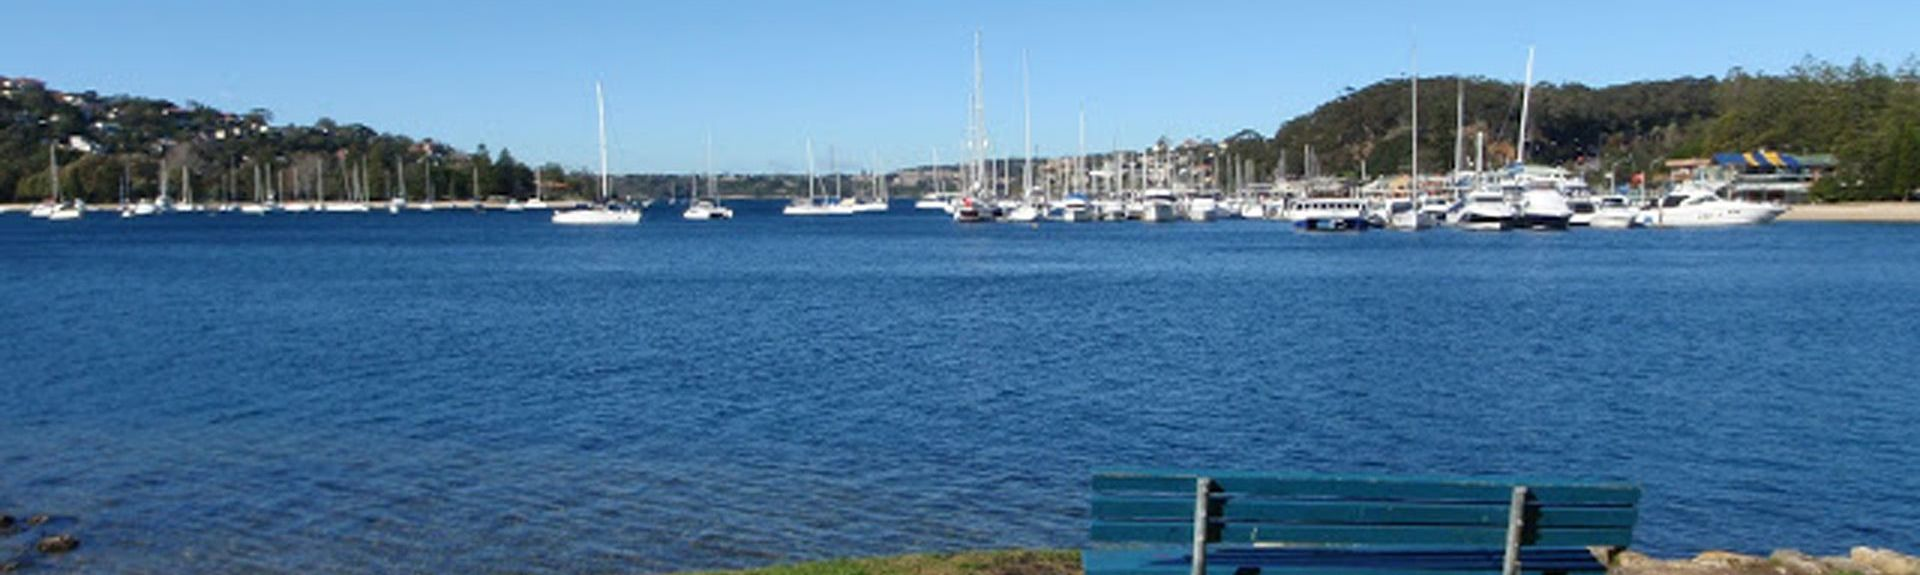 Willoughby, Sydney, New South Wales, Australia